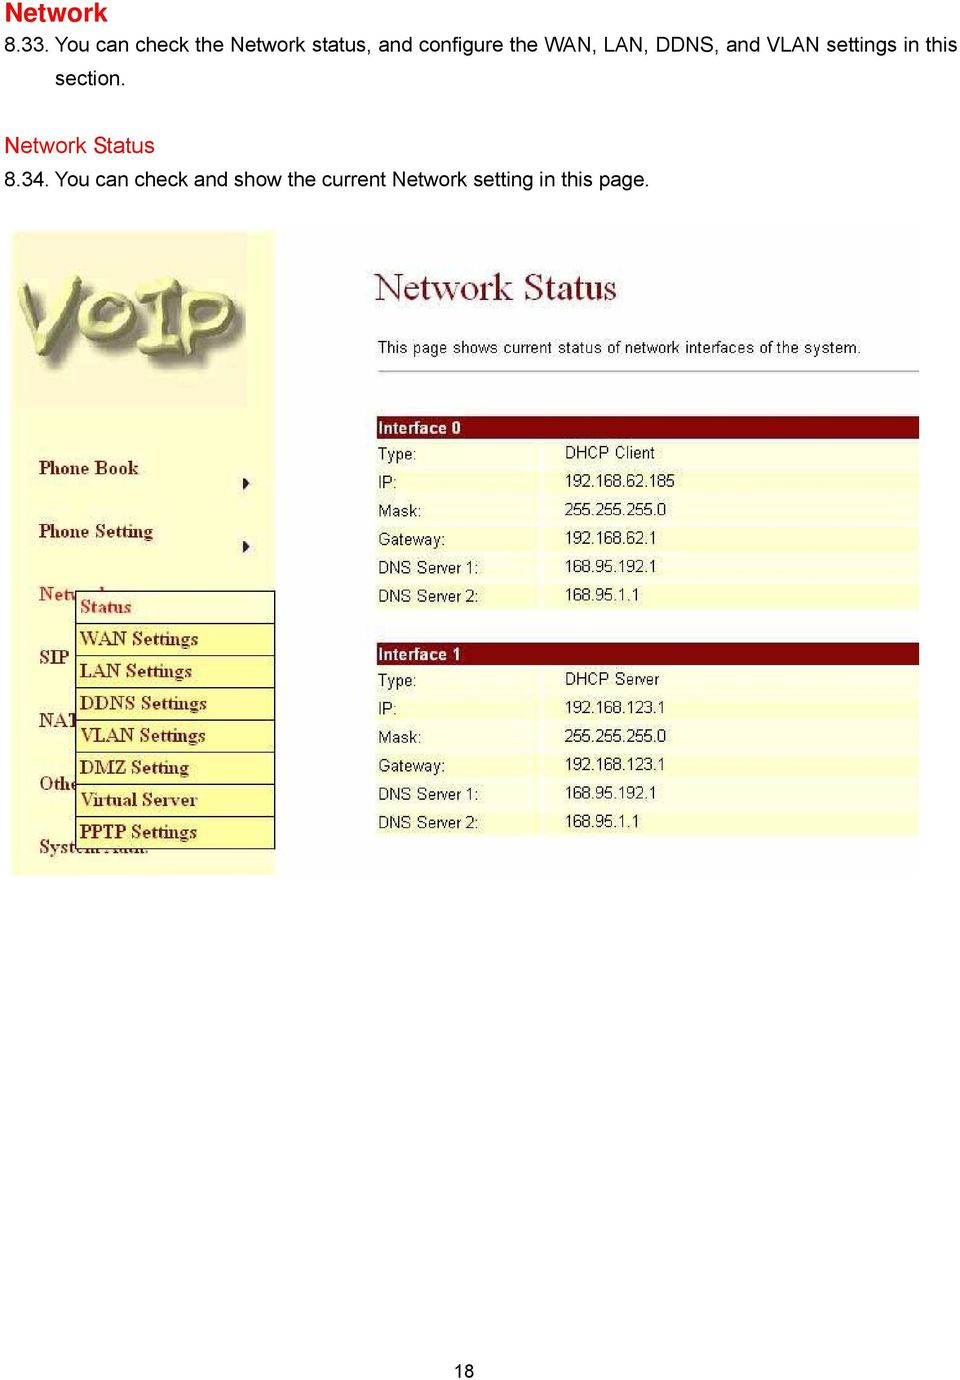 WAN, LAN, DDNS, and VLAN settings in this section.